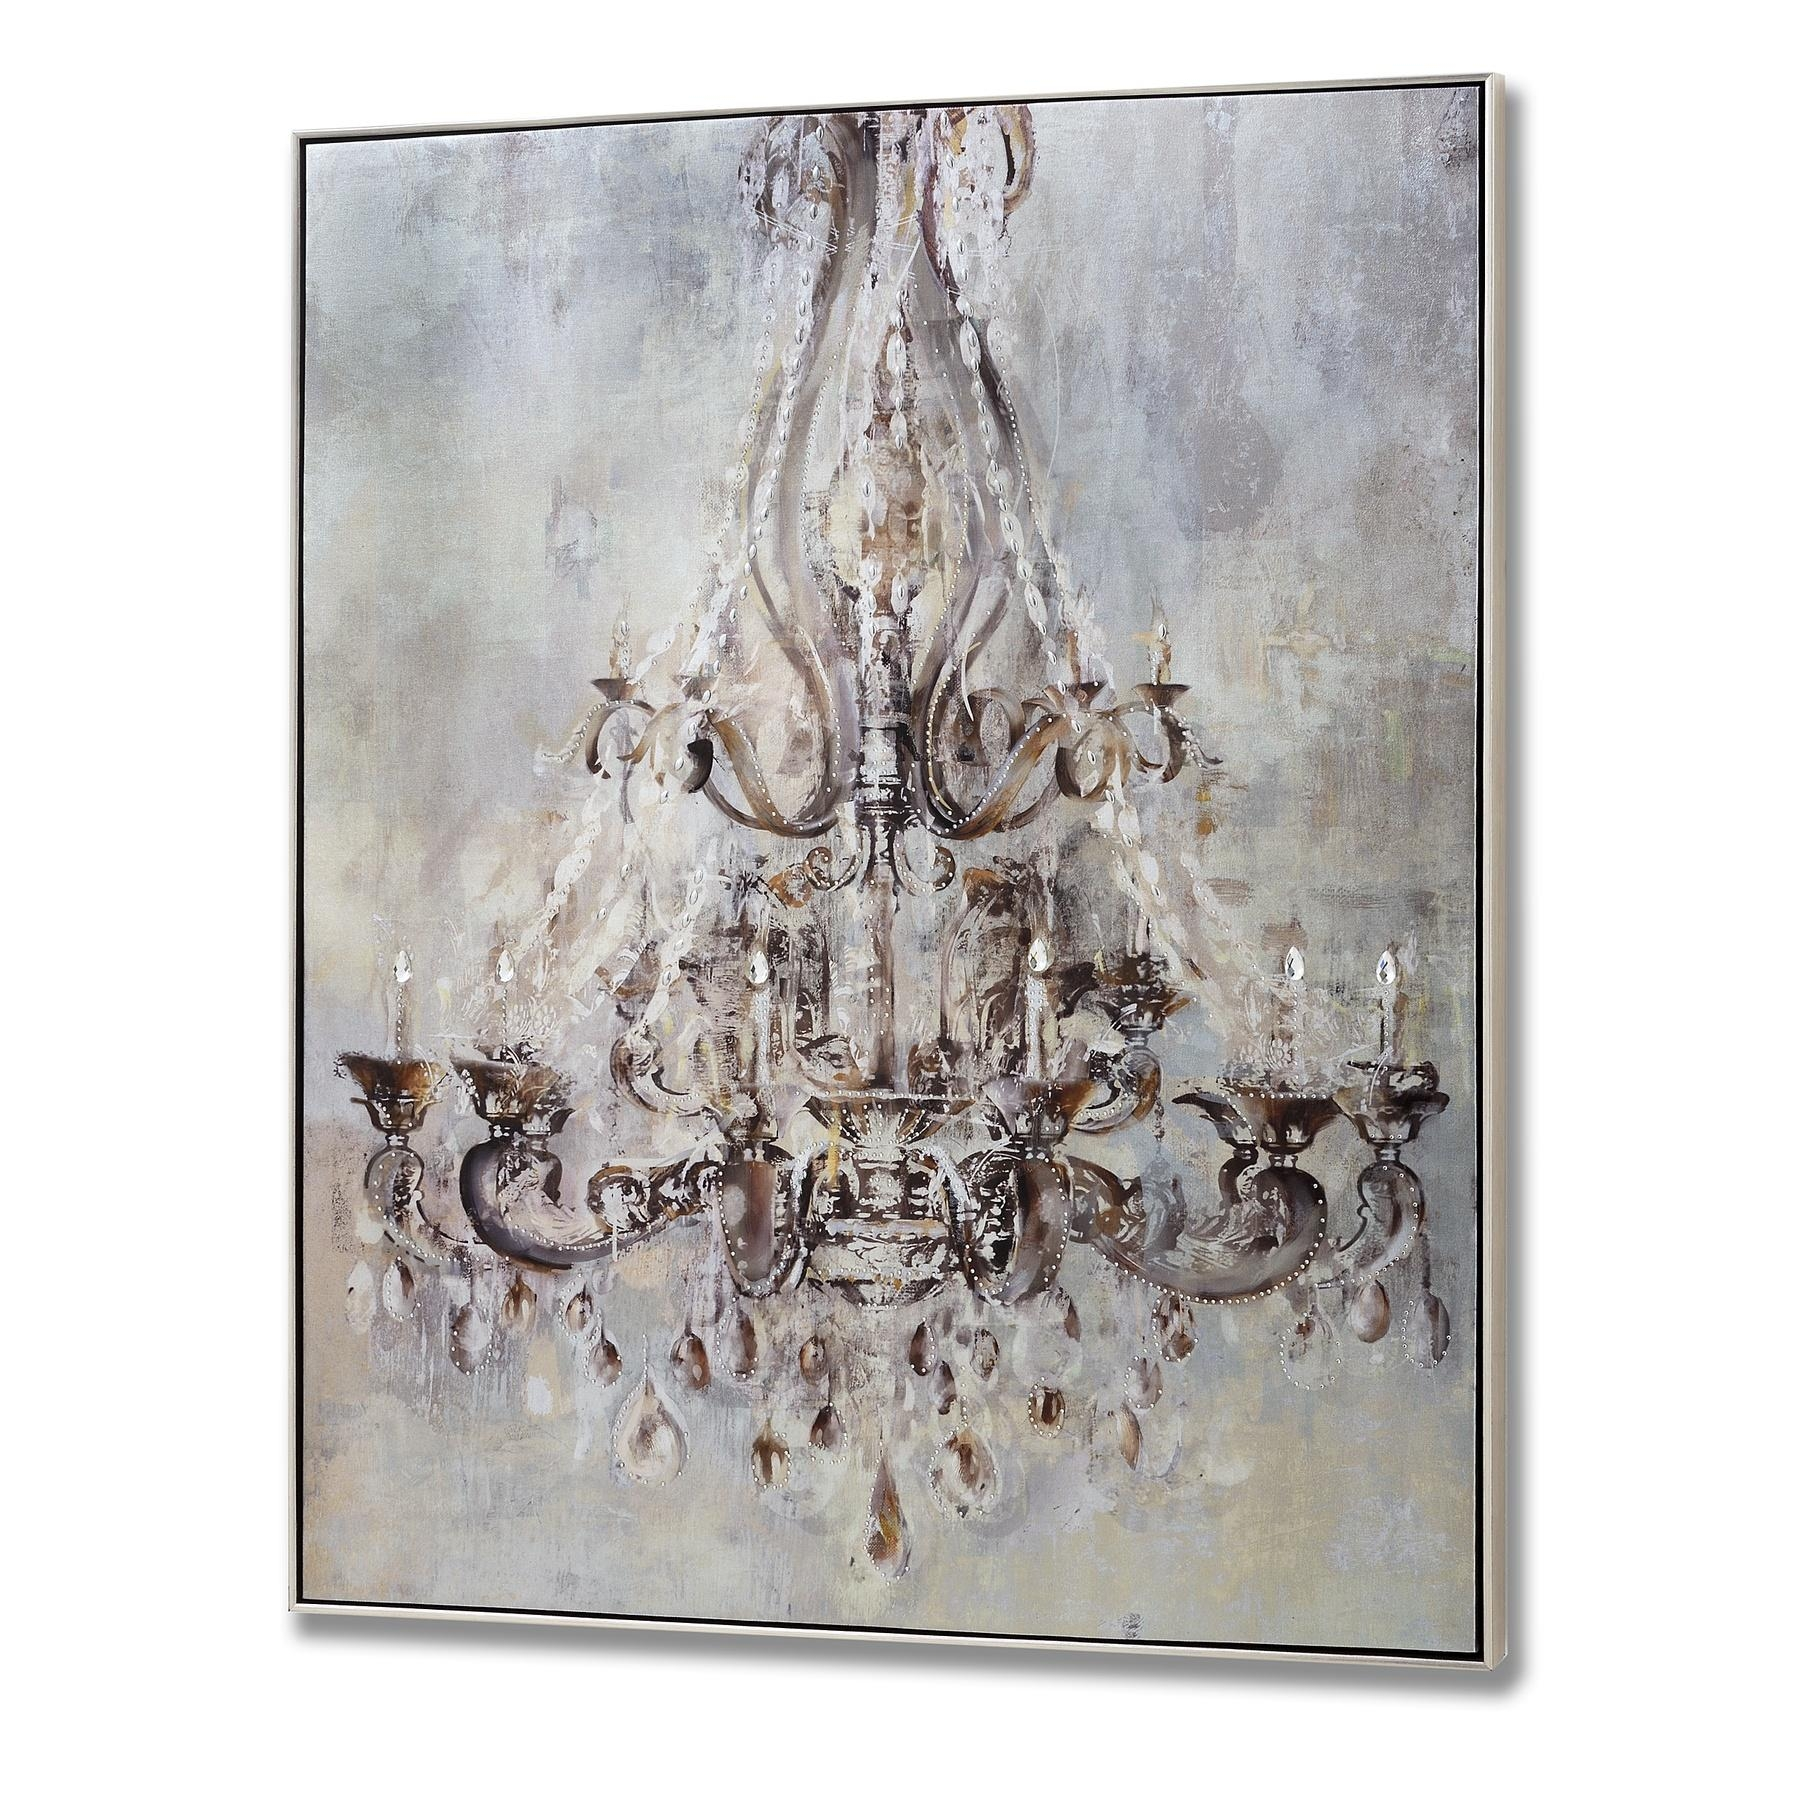 Framed Metalic Chandelier Wall Art With Metal Studs From Hill Inside Metal Framed Wall Art (Image 9 of 20)